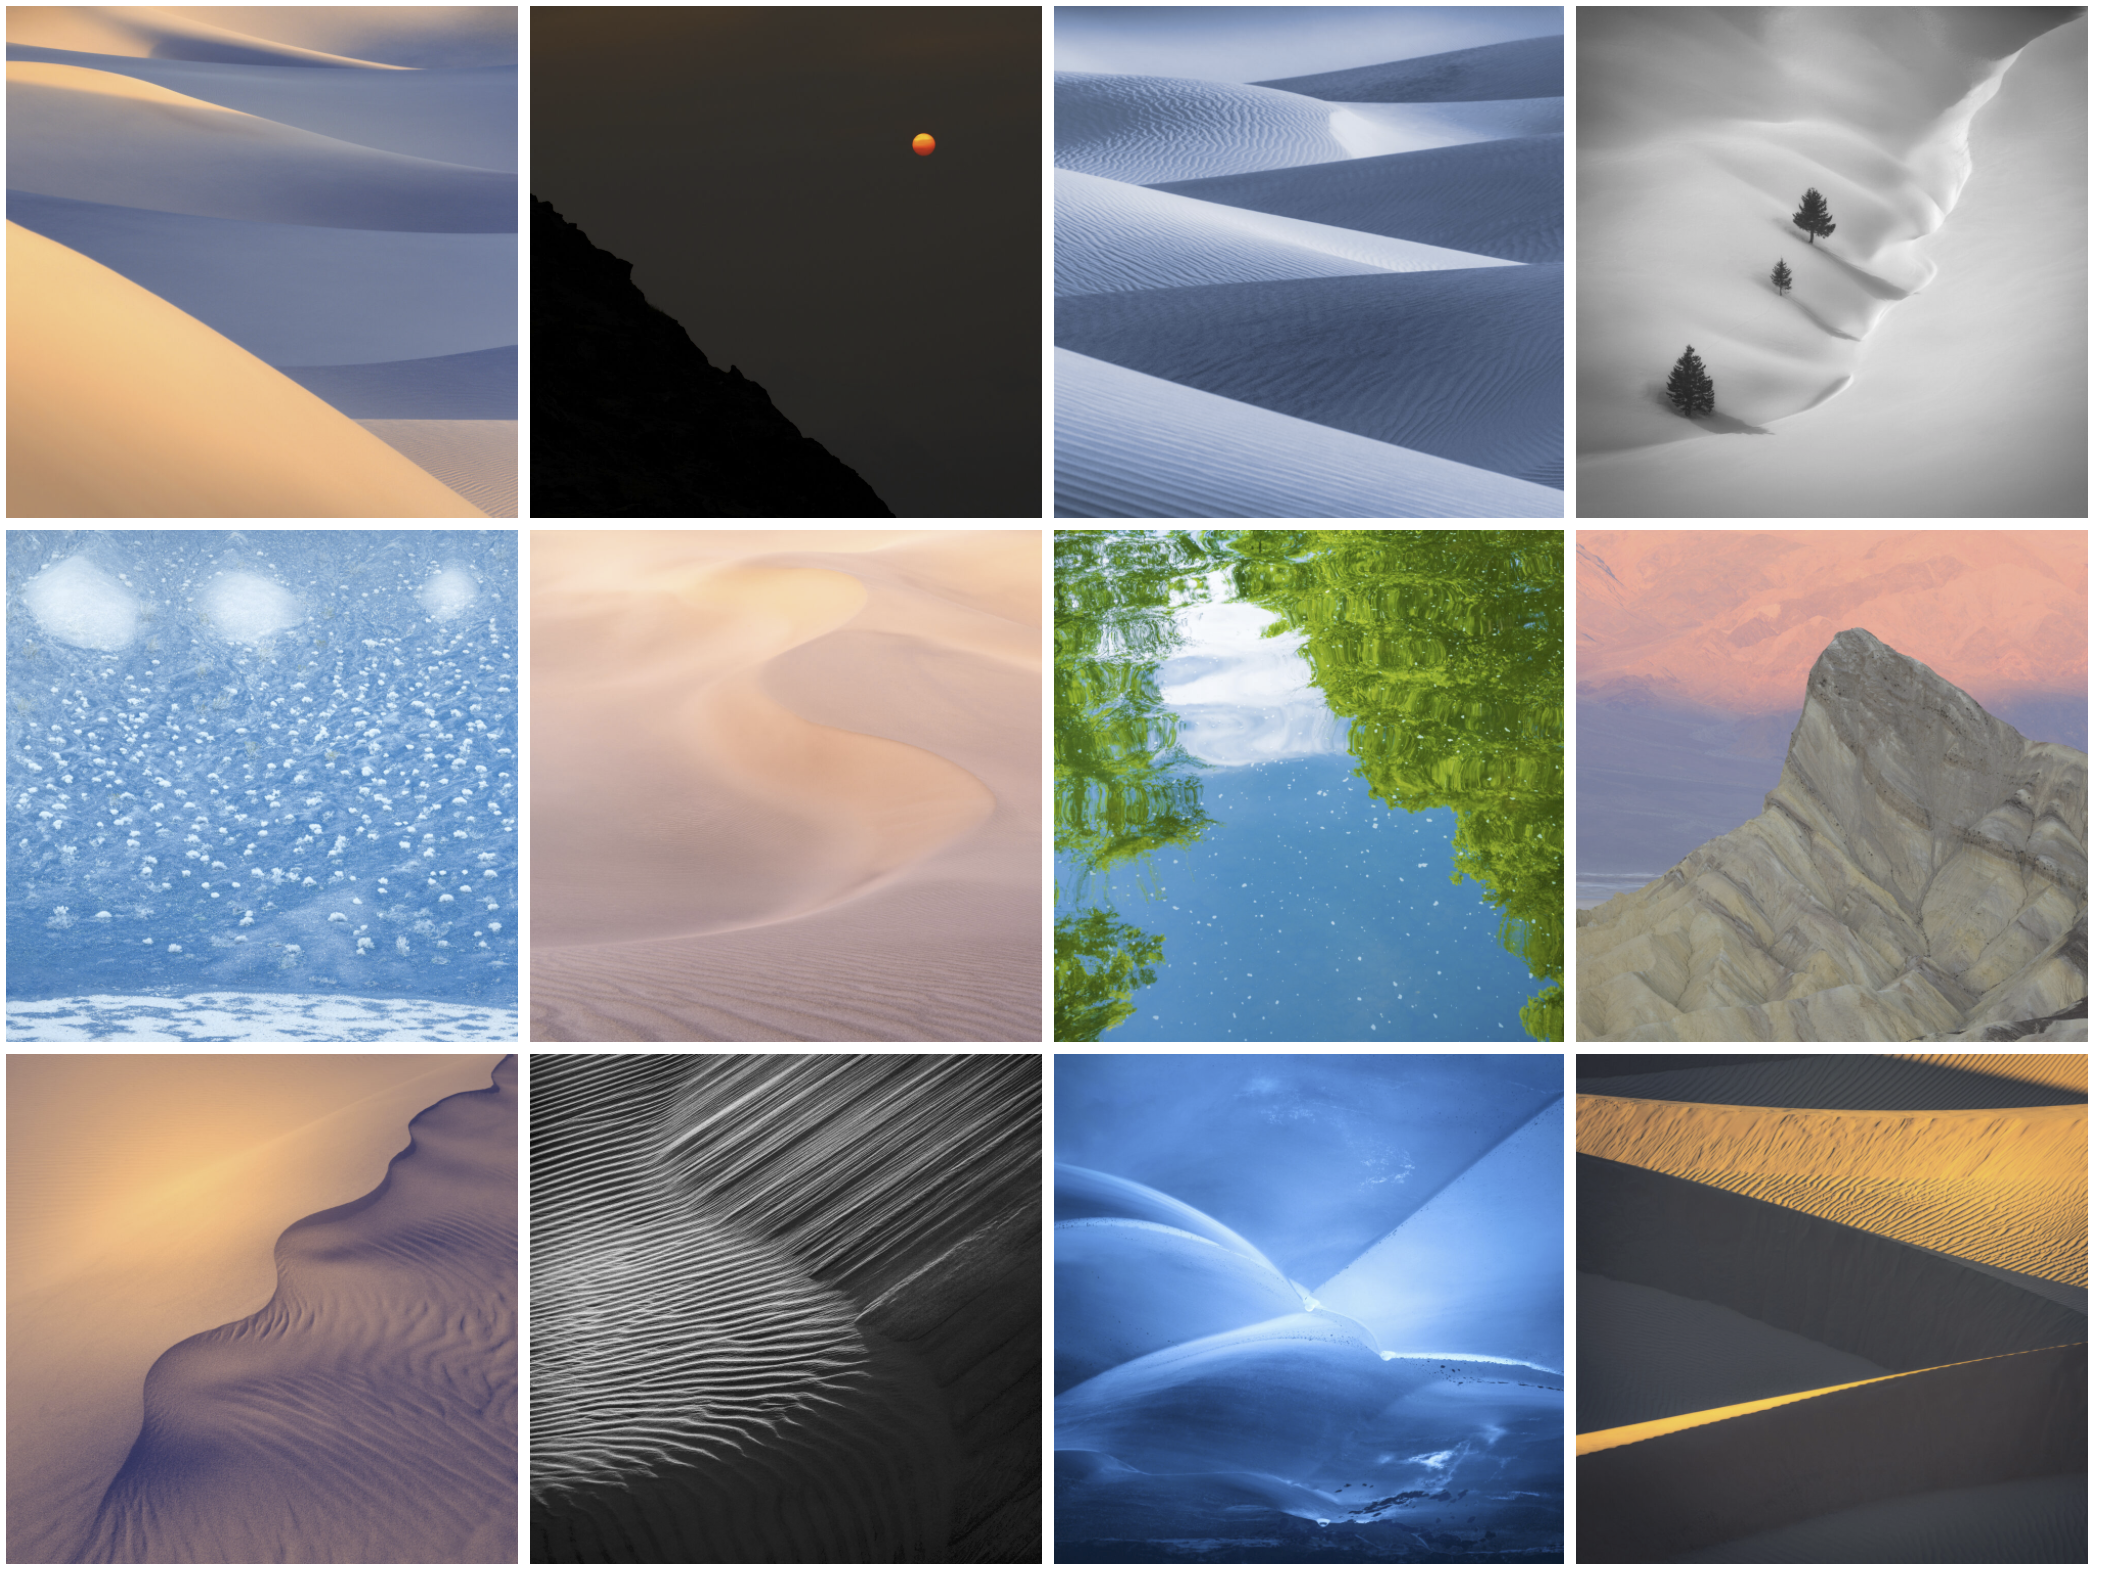 An overview of different images from my portfolio Meraki